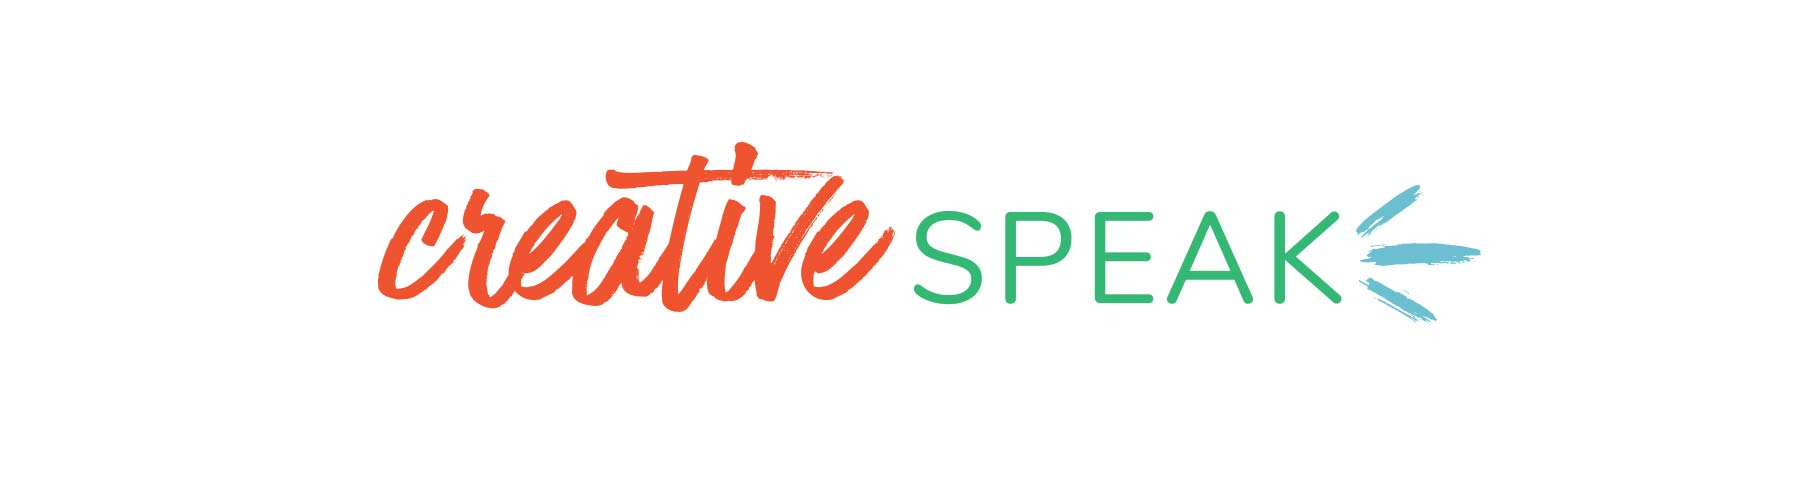 Creative Speak logo